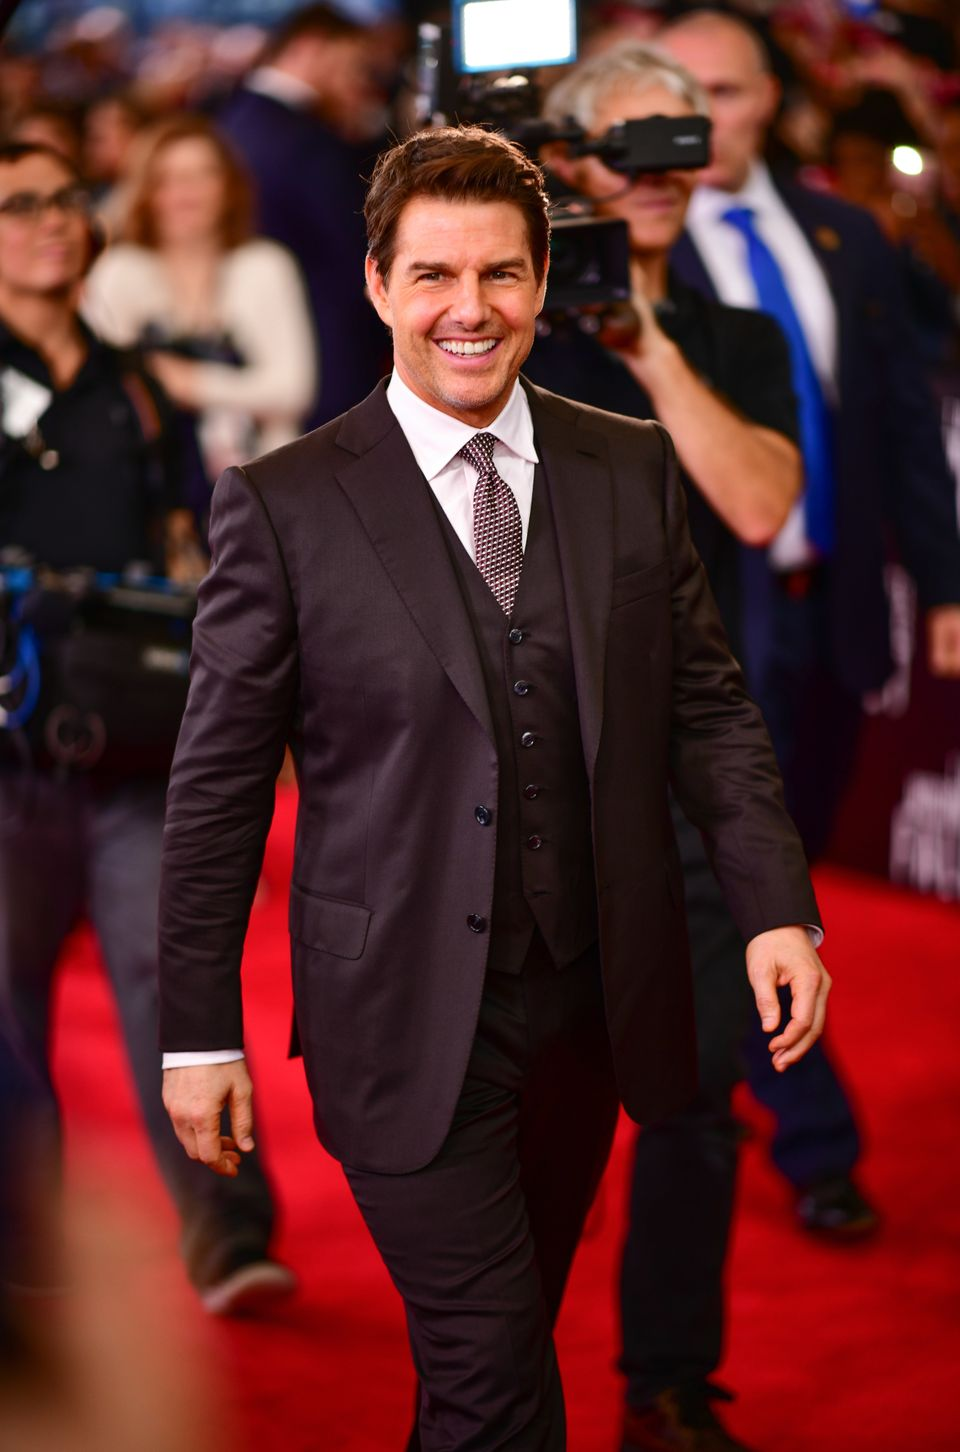 WASHINGTON, DC - JULY 22:  Tom Cruise attends the 'Mission: Impossible - Fallout' U.S. Premiere at Lockheed Martin IMAX Theat